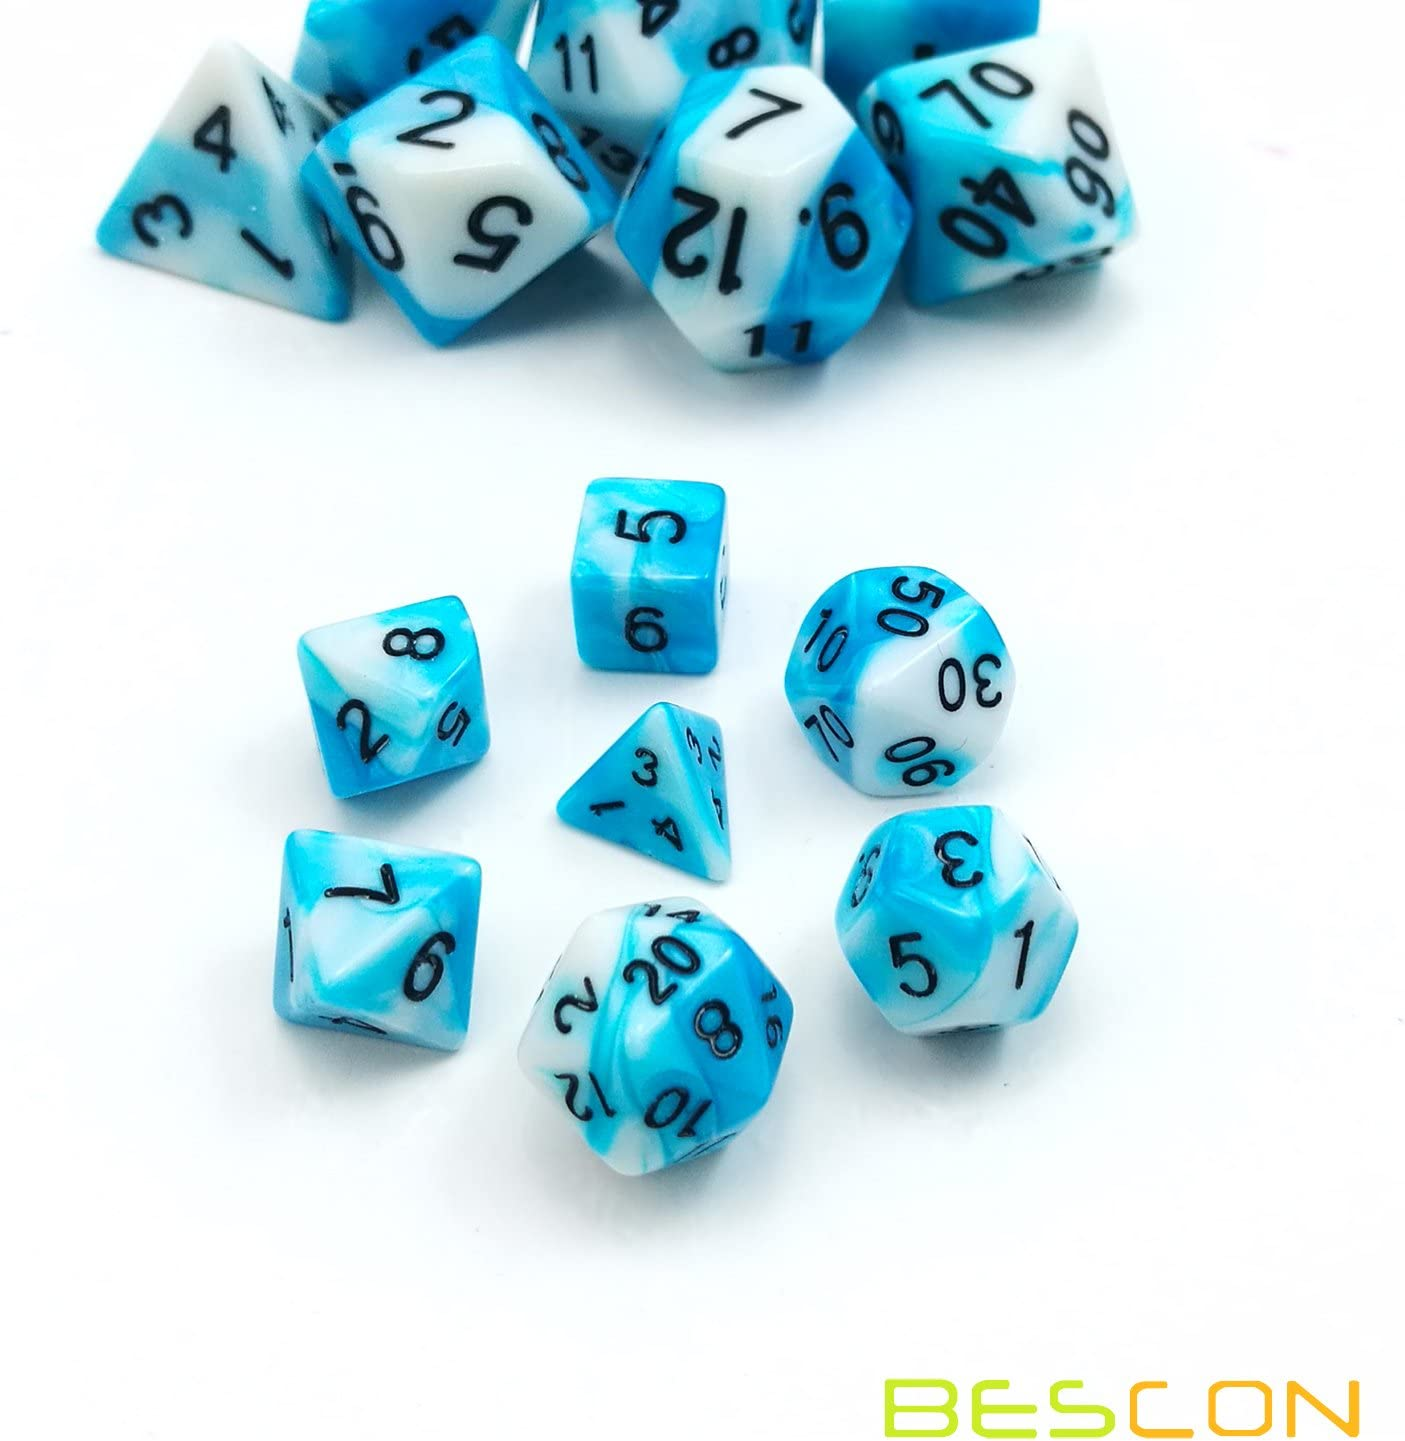 Mini ICY Track Bescon Mini Gemini Two Tone Polyhedral RPG Dice Set 10MM Small Mini RPG Role Playing Game Dice D4-D20 in Tube